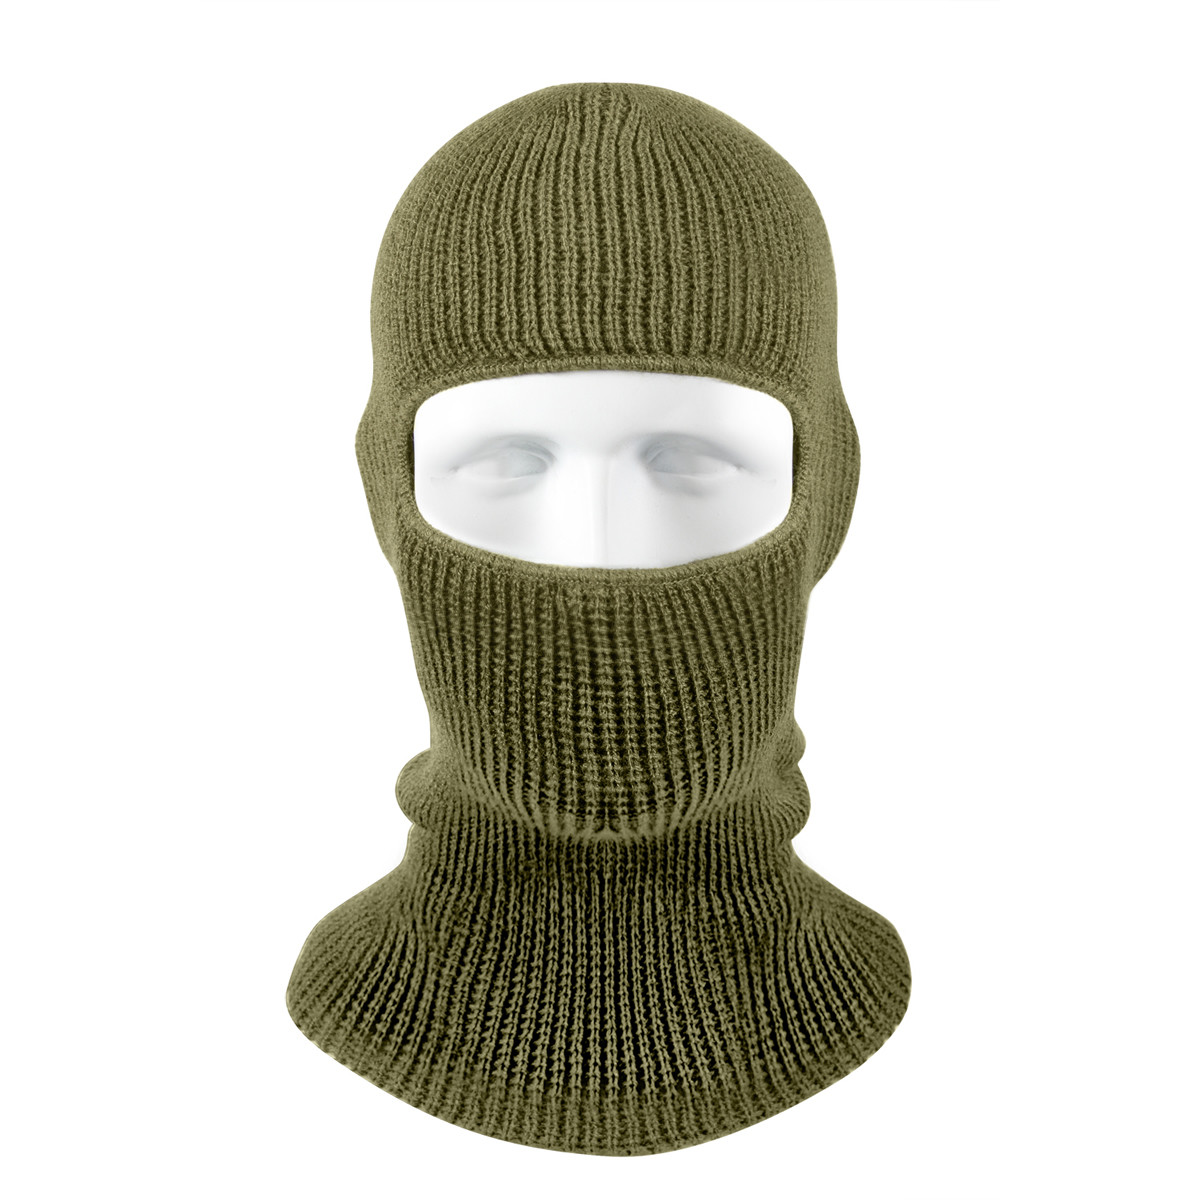 d0645956e36003 Shop One Hole Face Masks - Made in USA Fatigues Army Navy Gear